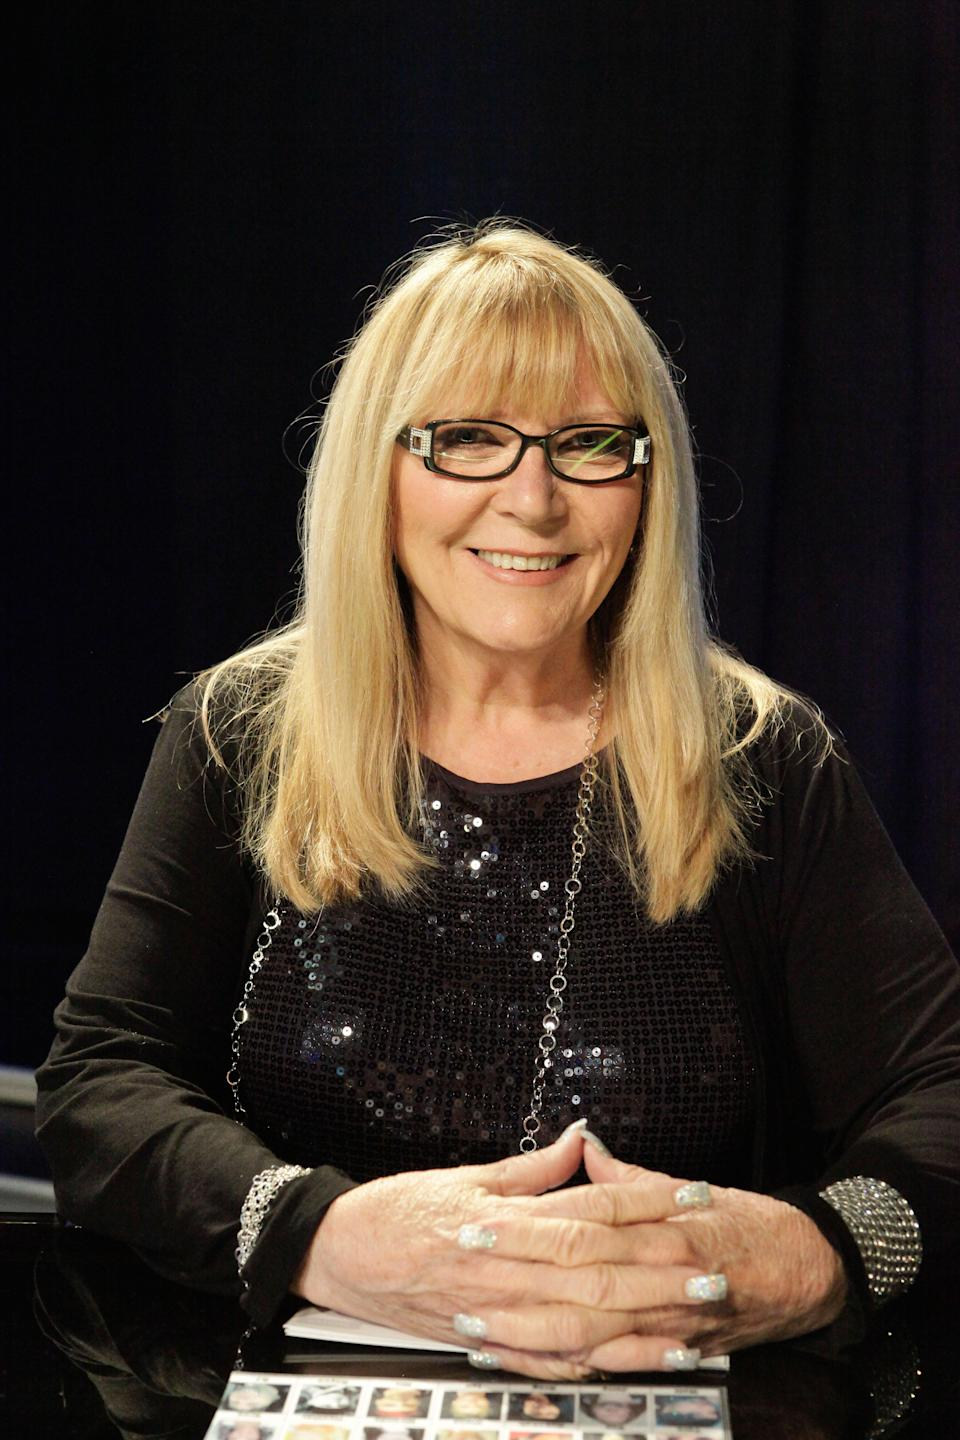 <em>Beetlejuice</em> makeup artist Ve Neill appearing as a judge on the Syfy special effects makeup competition <em>Face Off.</em> (Photo: Nicole Wilder/Syfy/Courtesy of Everett Collection)